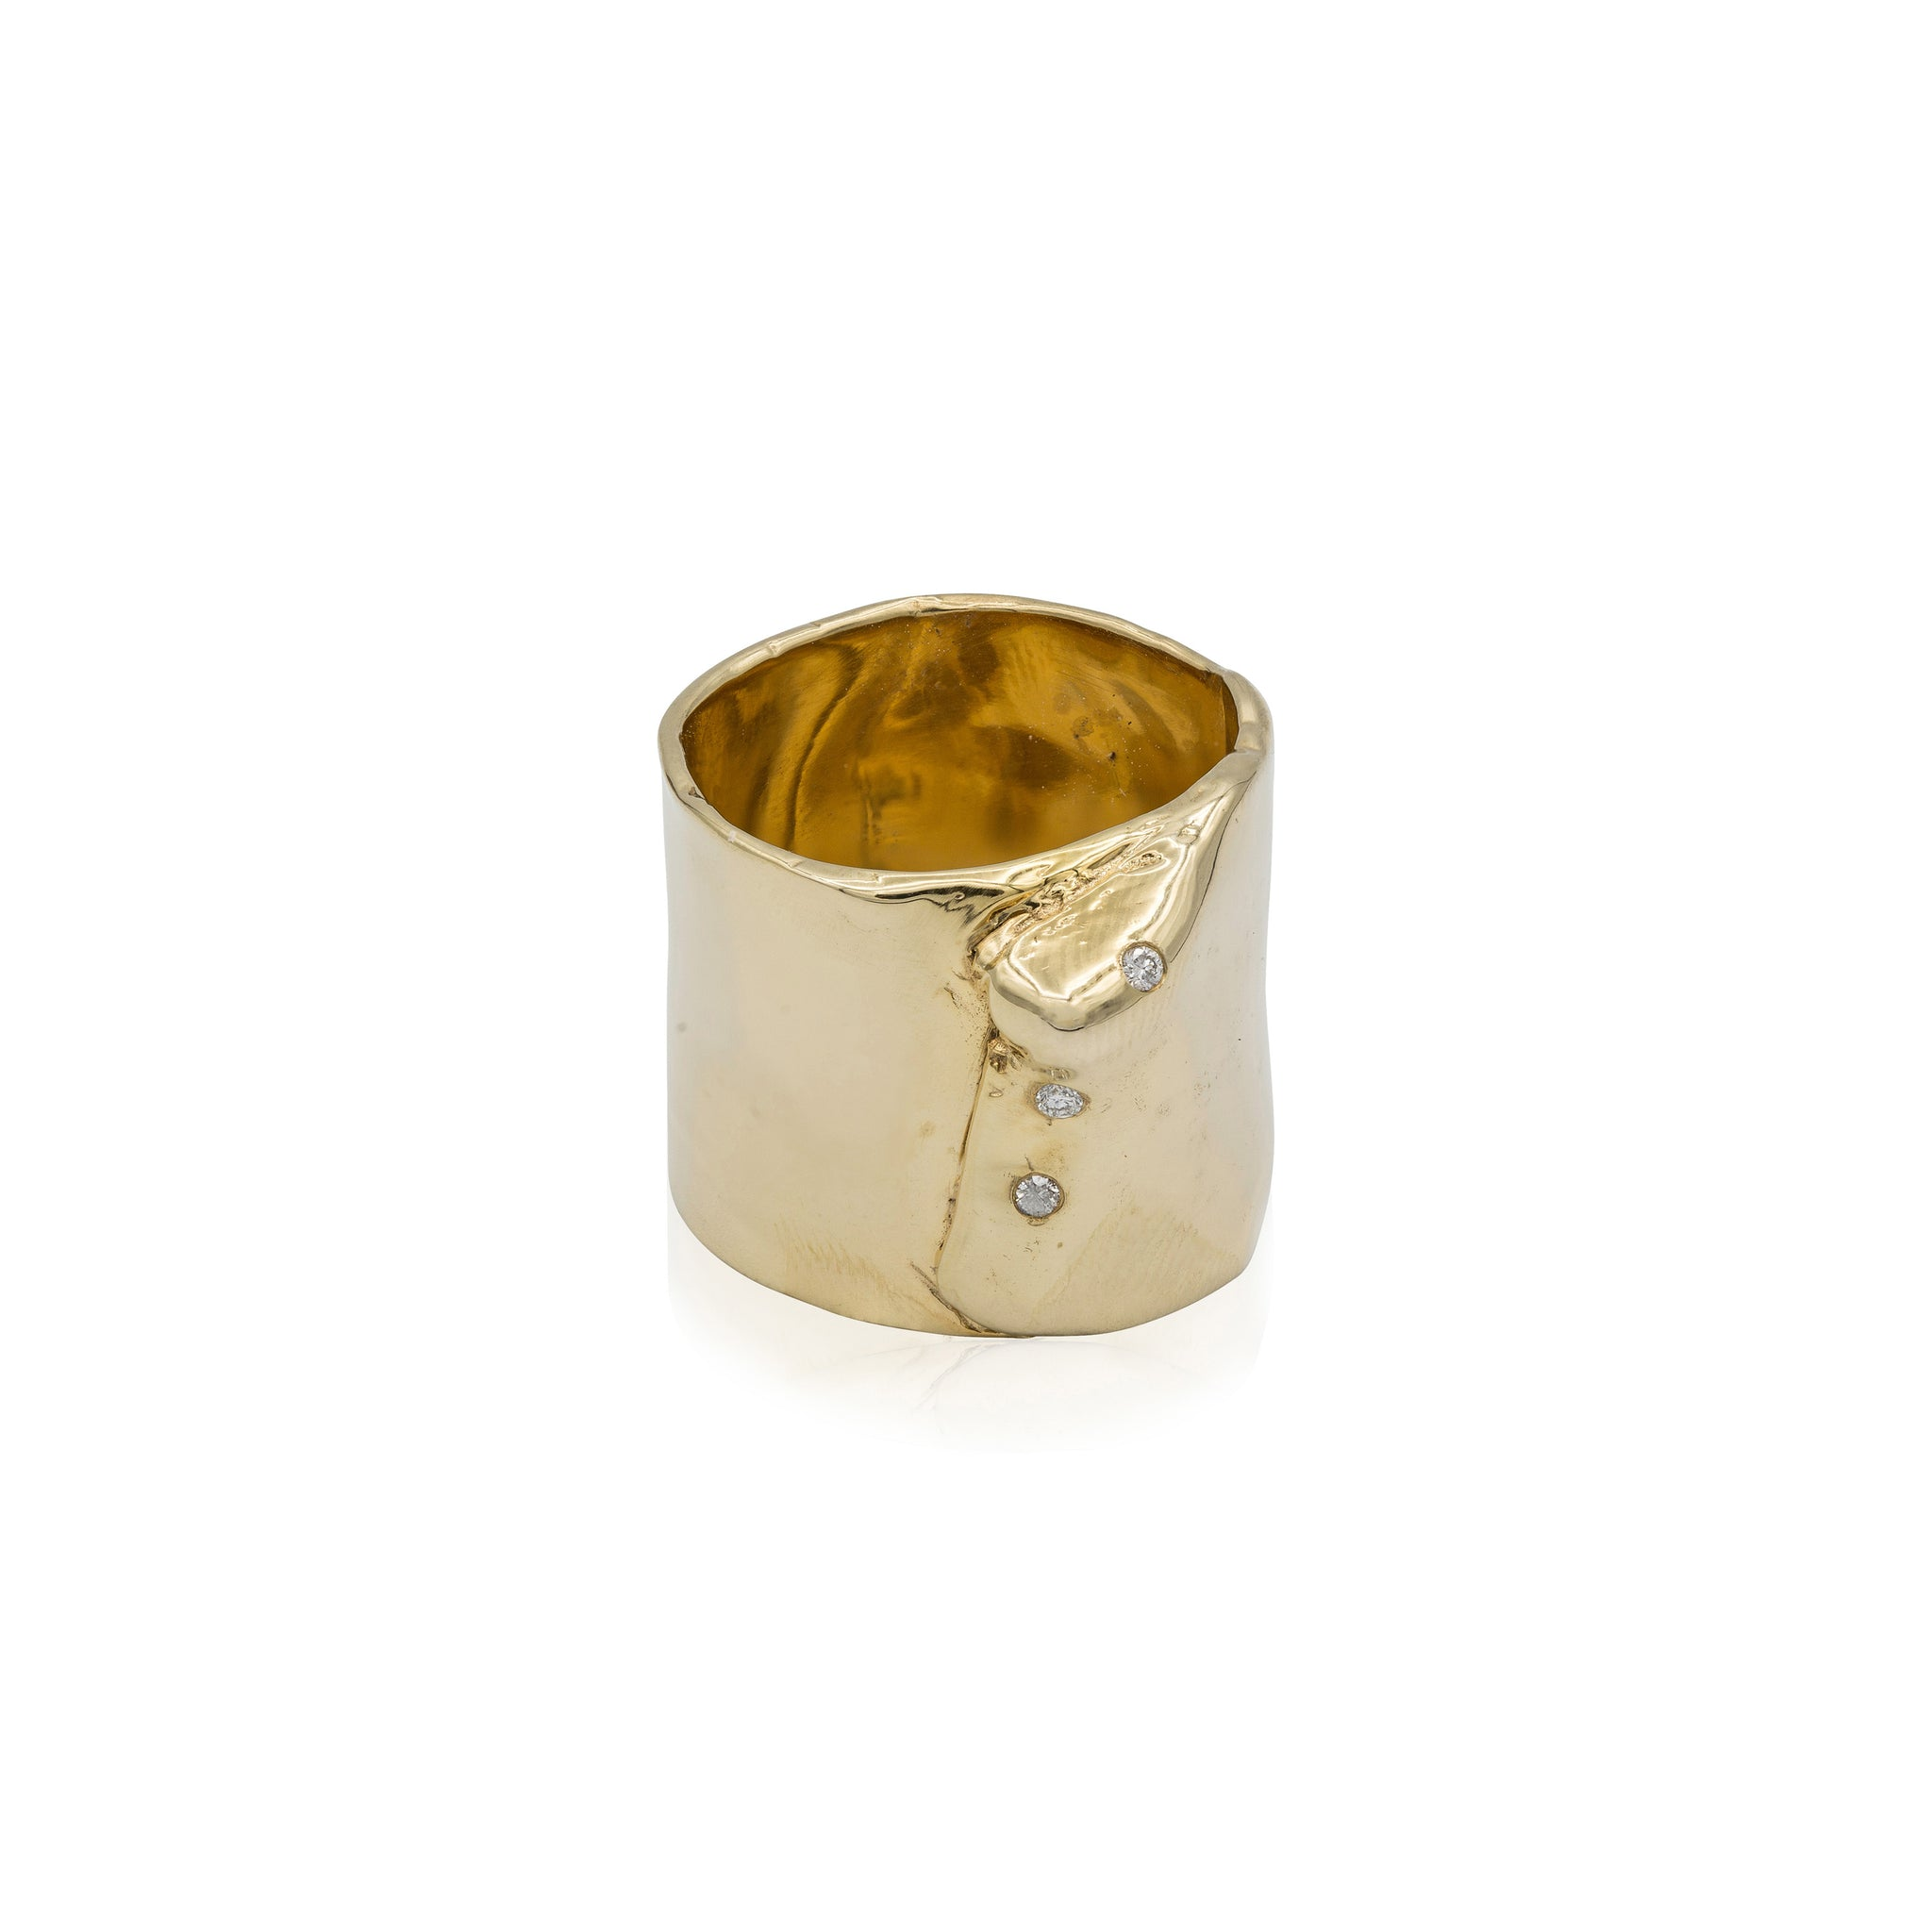 fine jewelry fashion gold diamond ring barneys new york cool girl edgy style